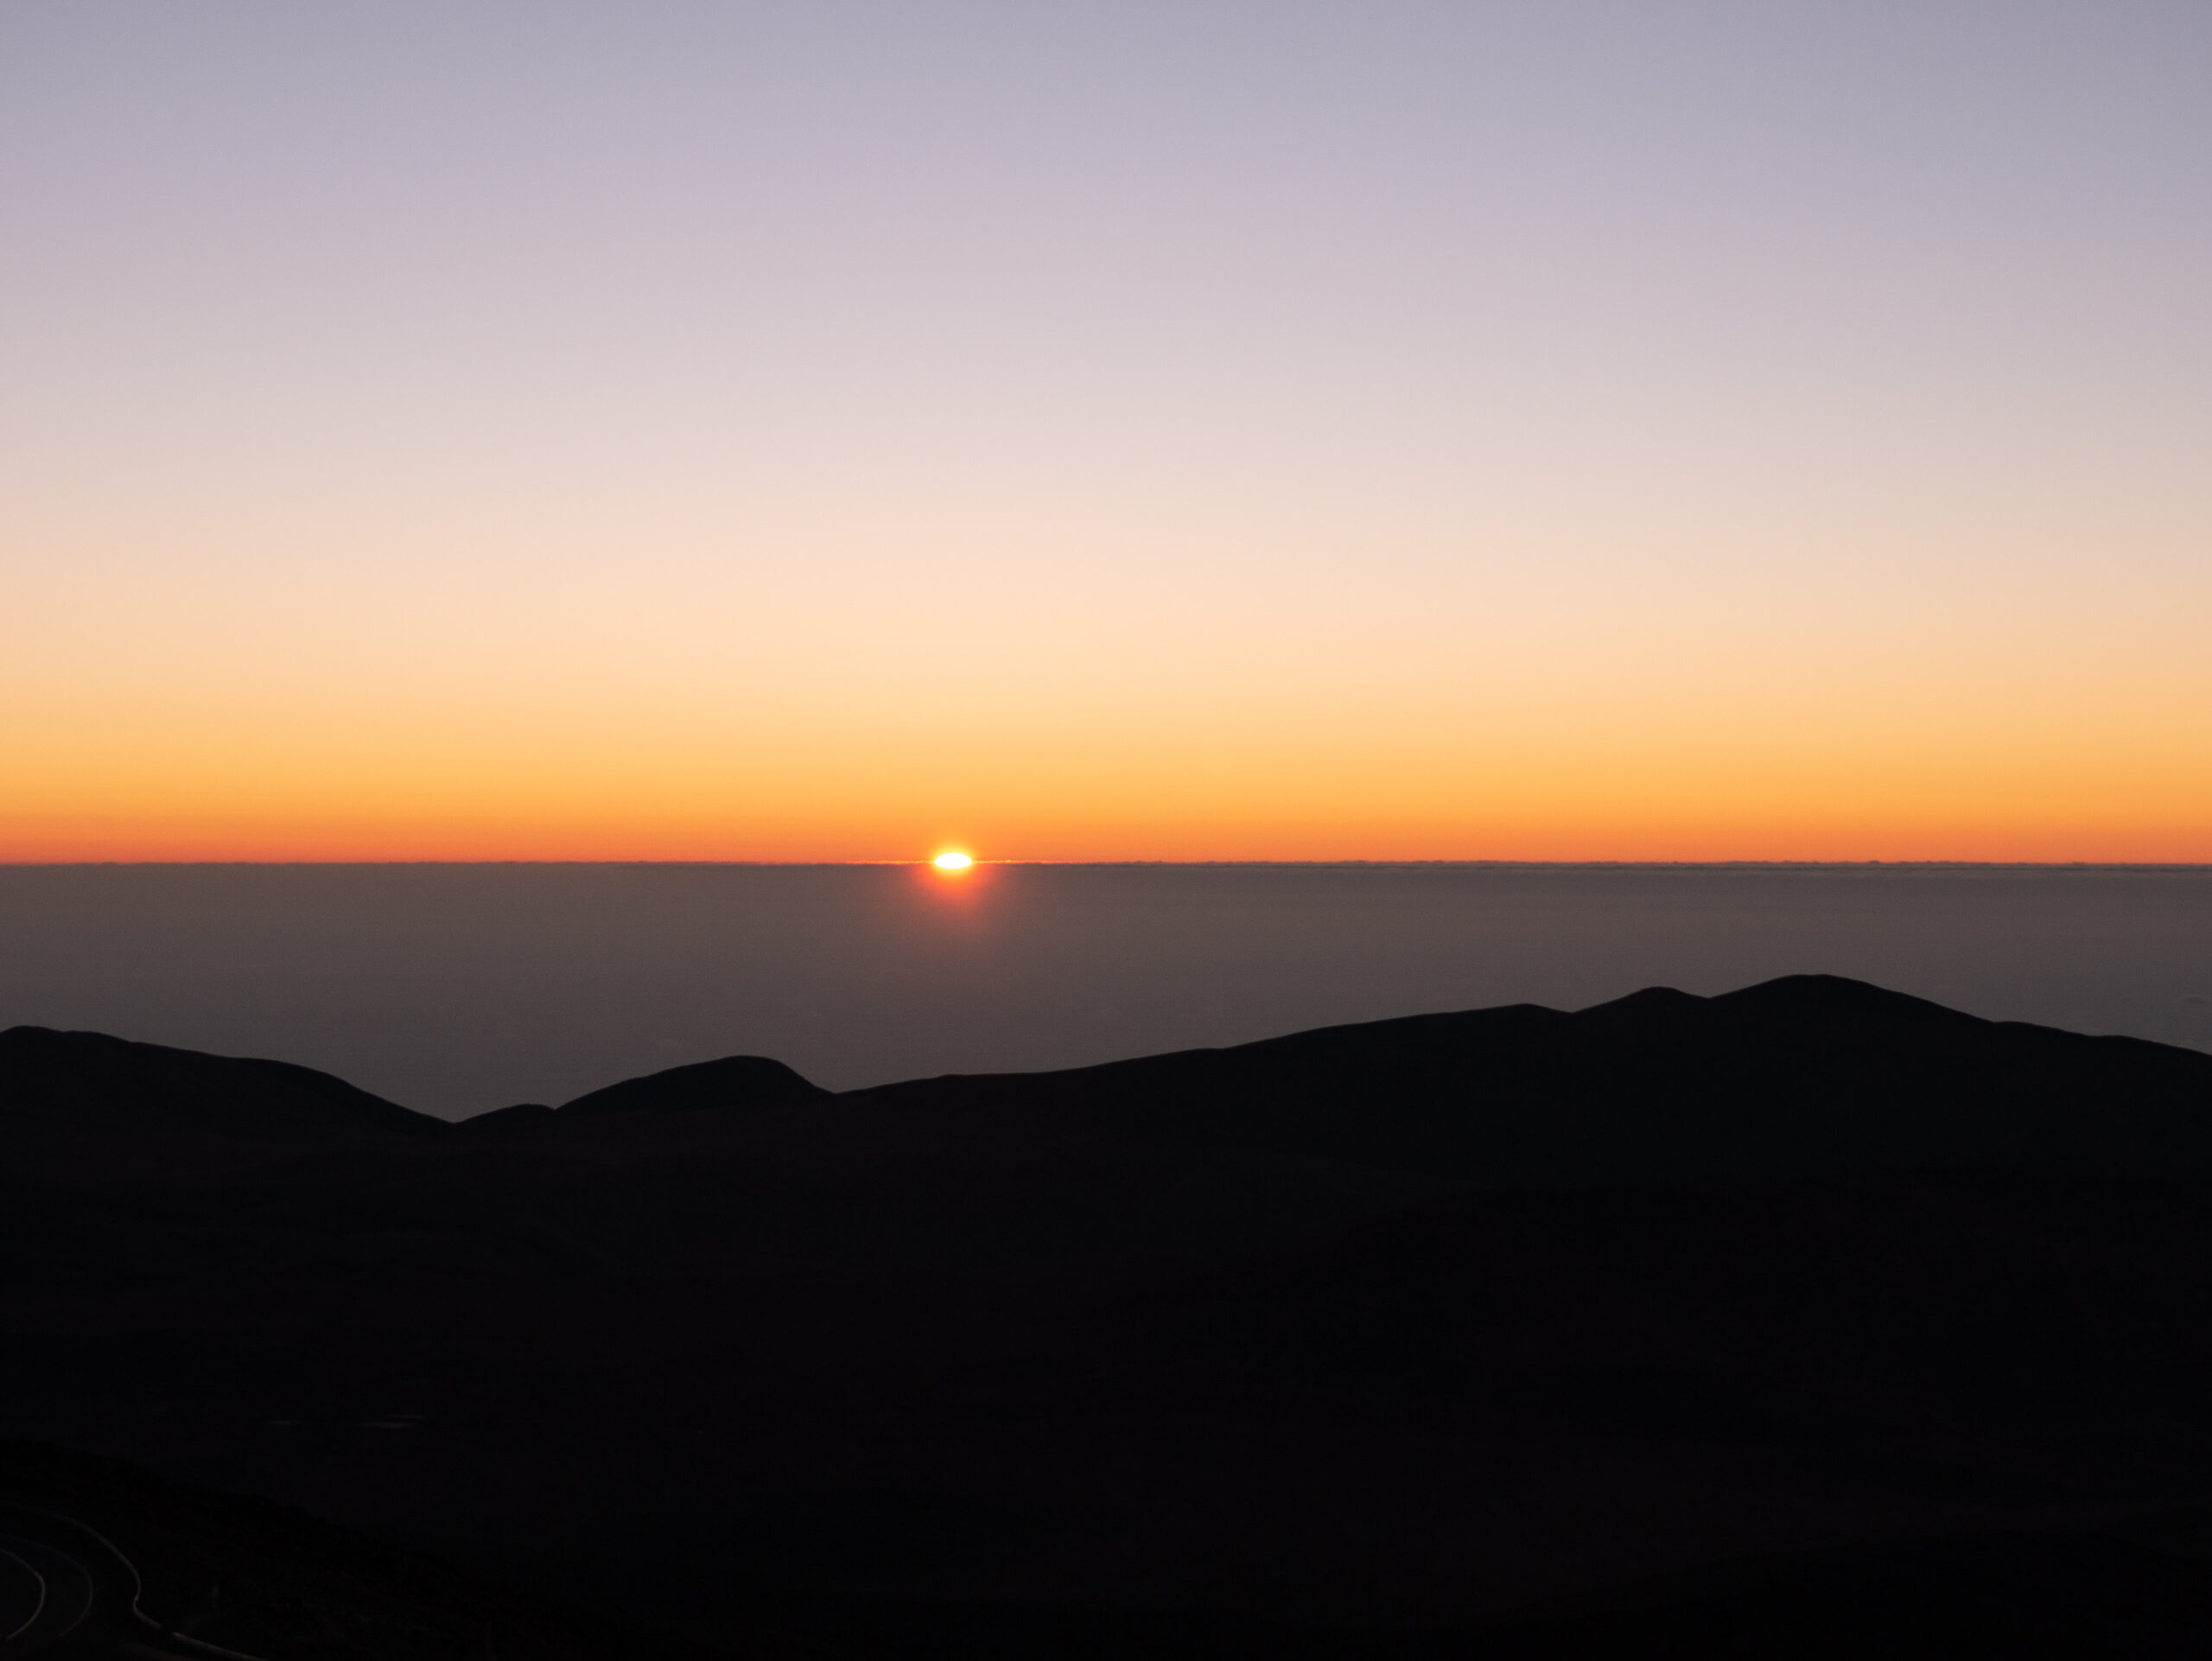 Sunset at the Atacama desert in Chile. View from the Paranal observatory.